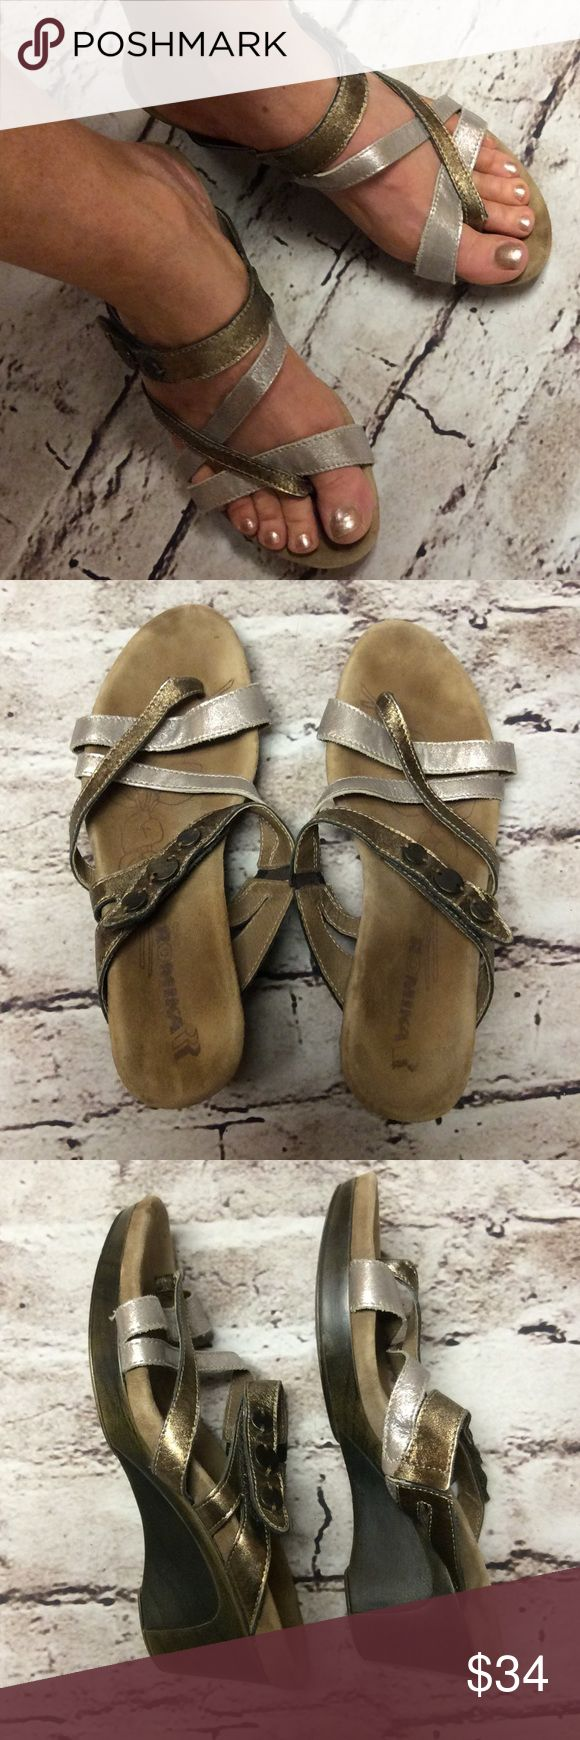 "ROMIKA STRAPPY WEDGE SANDALS/SHOES These are so comfortable it feels like you're walking on air. The footbed shows footprints due to the soft suede leather footbed. Heel 2.5"". Gently used. 2-Tone gold and bronze with toe loop Romika Shoes Wedges"